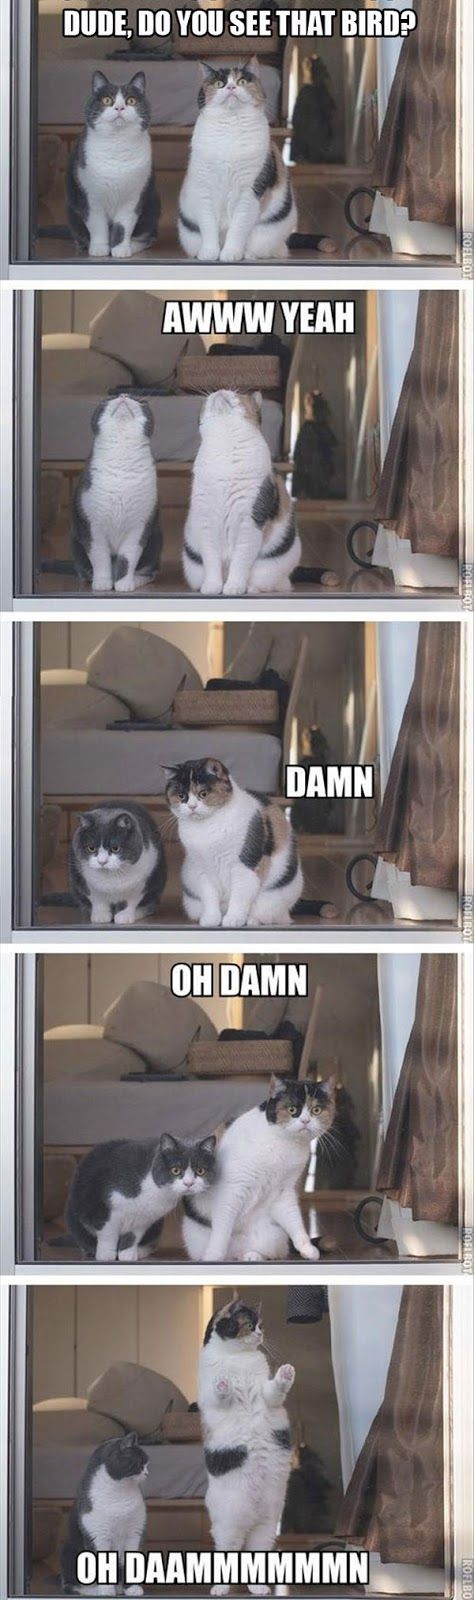 Funny Cat Pictures - 20 Pics: Animals, Giggle, Funny Cats, Funny Pictures, Funny Stuff, Funnies, Humor